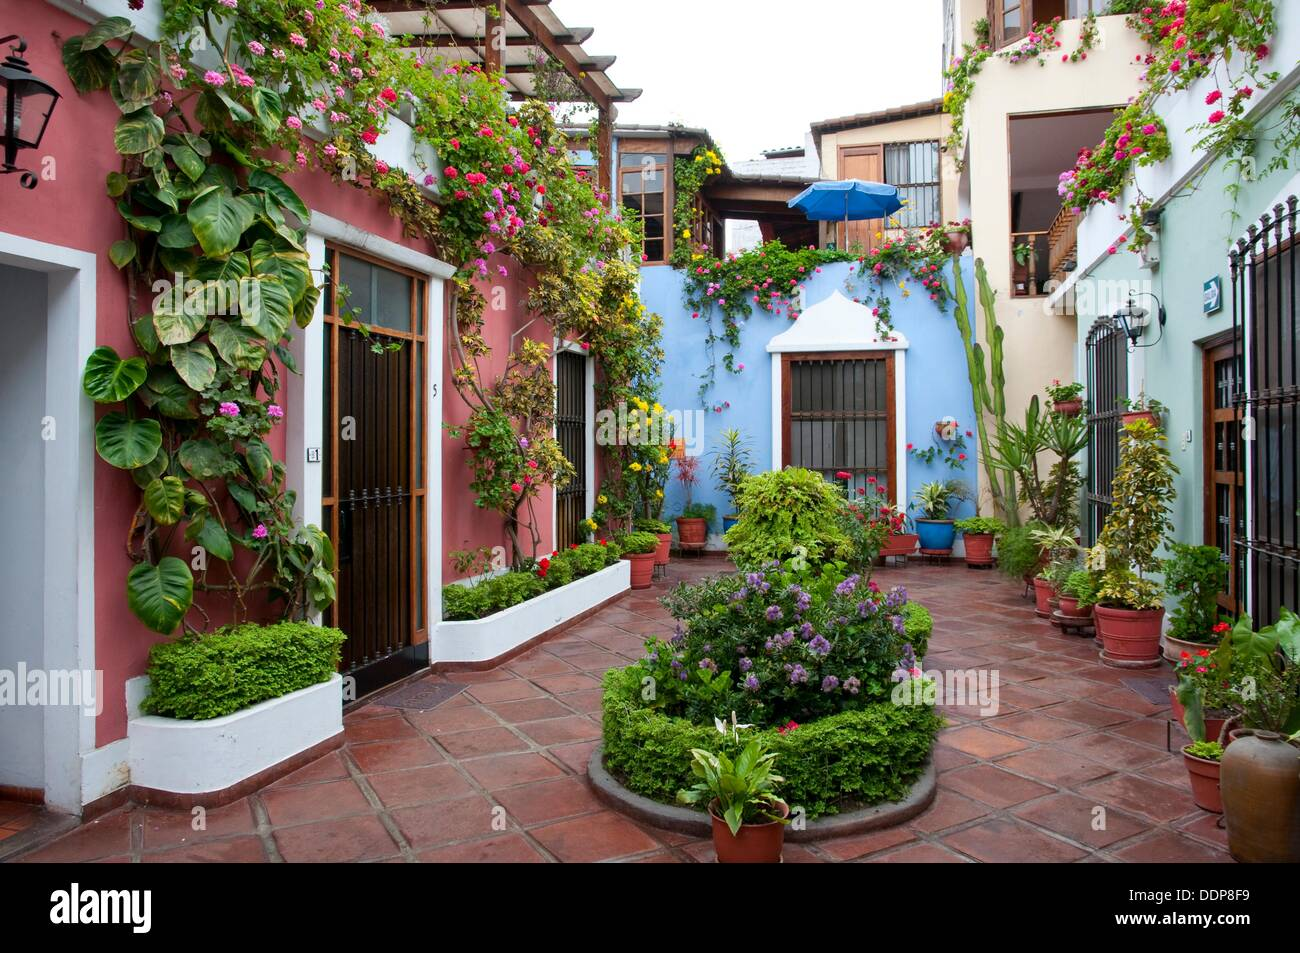 Great Stock Photo   The Interior Courtyard Of The El Patio Hostal In Miraflores,  Lima, Peru, South America